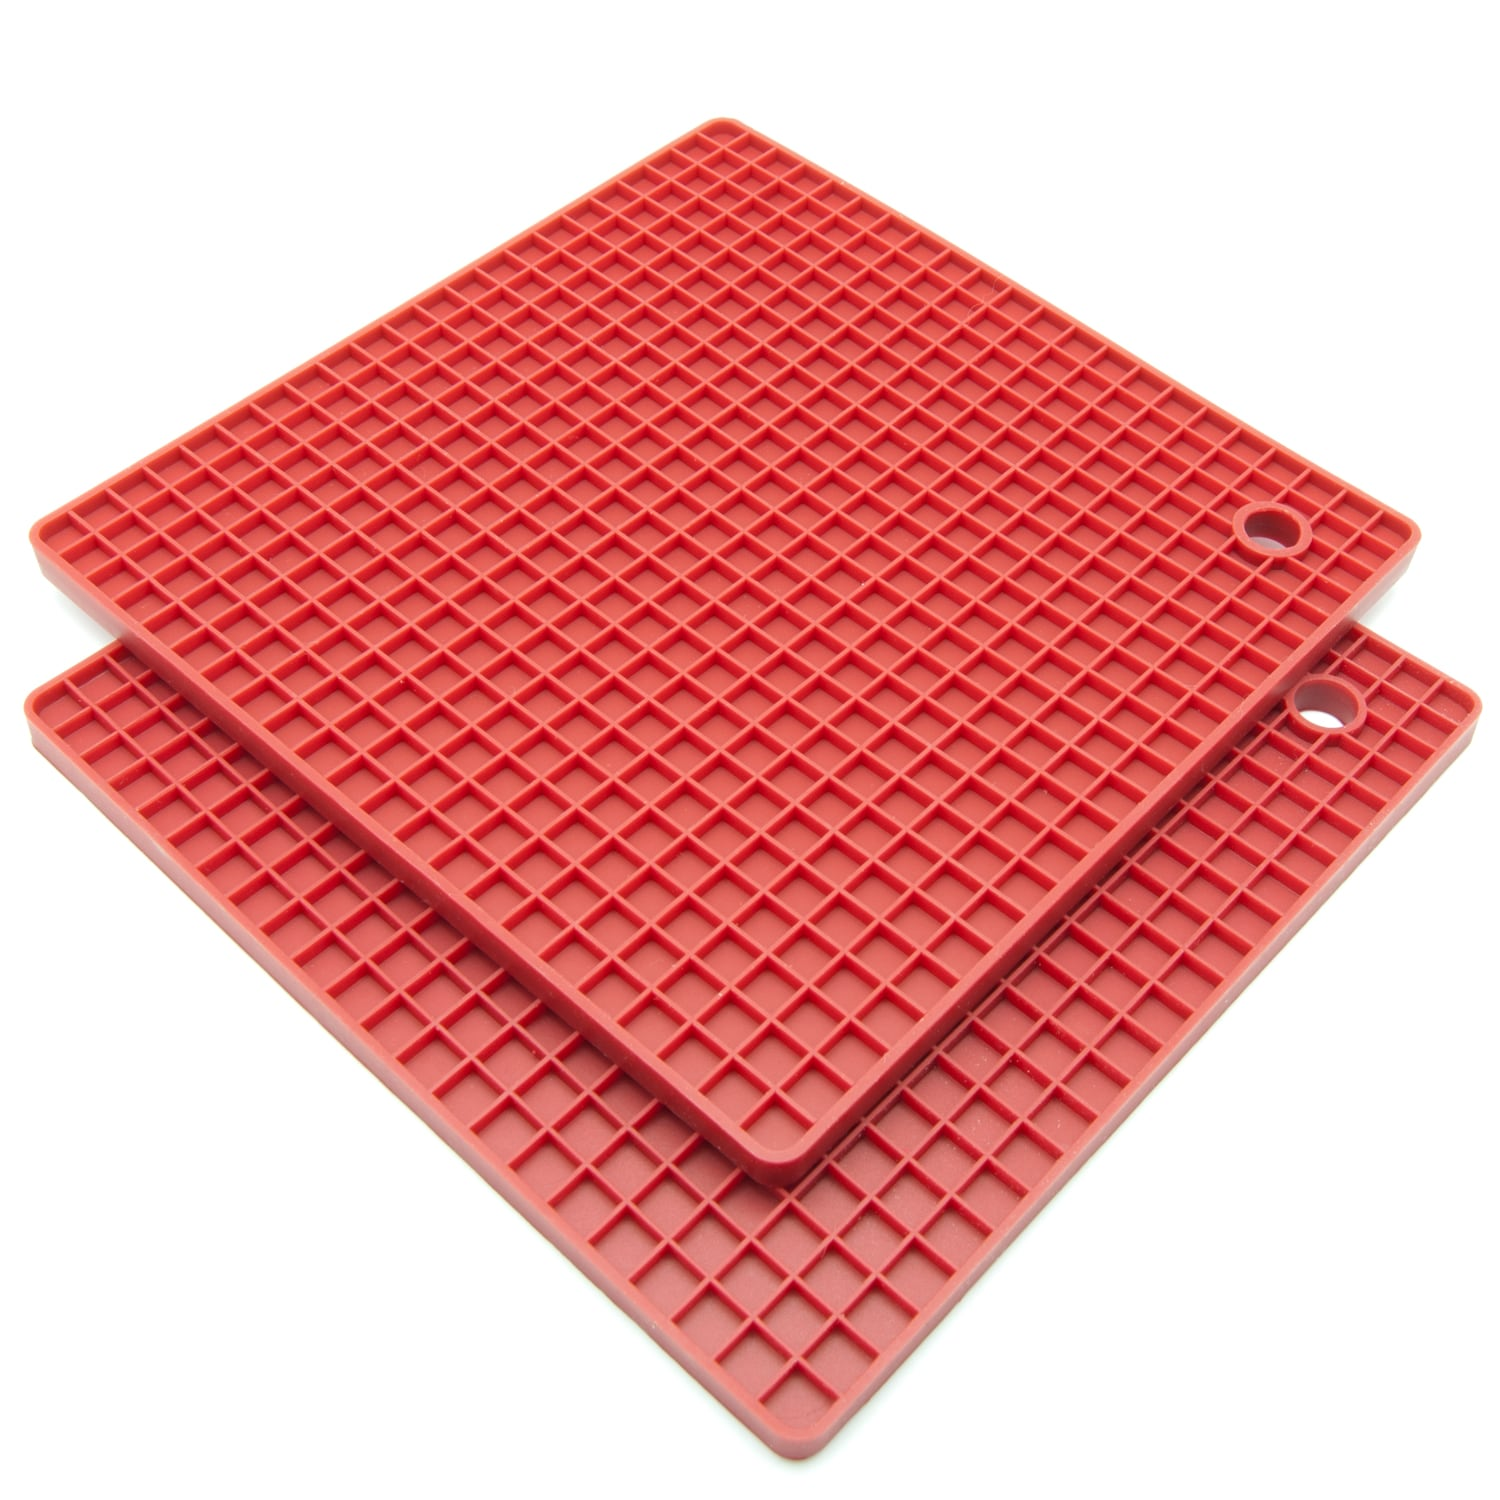 Silicone Pot Holders: Freshware Silicone Honeycomb Pot Holders/ Trivets (Set Of